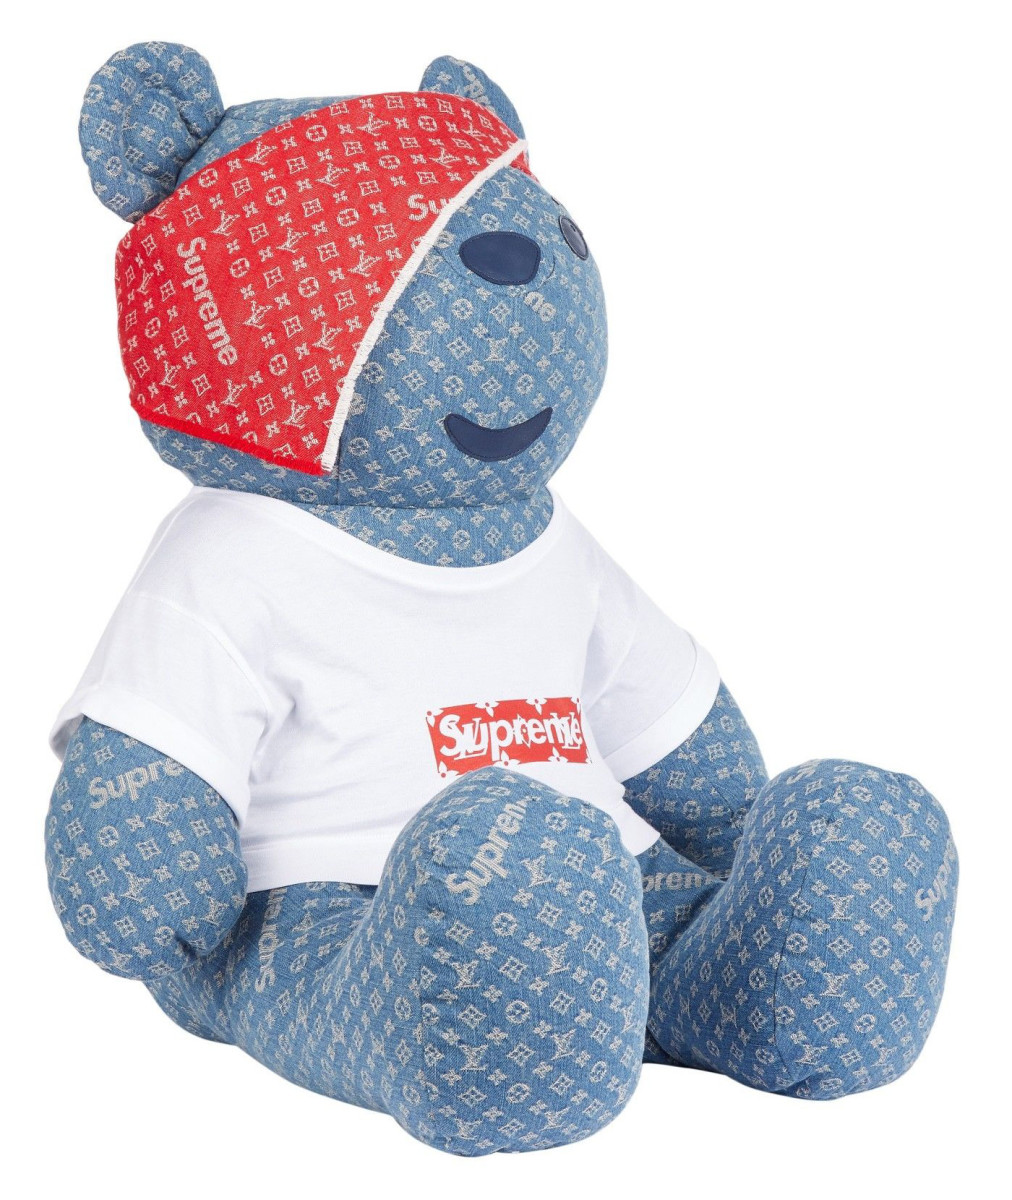 supreme-louis-vuitton-teddy-bear-02